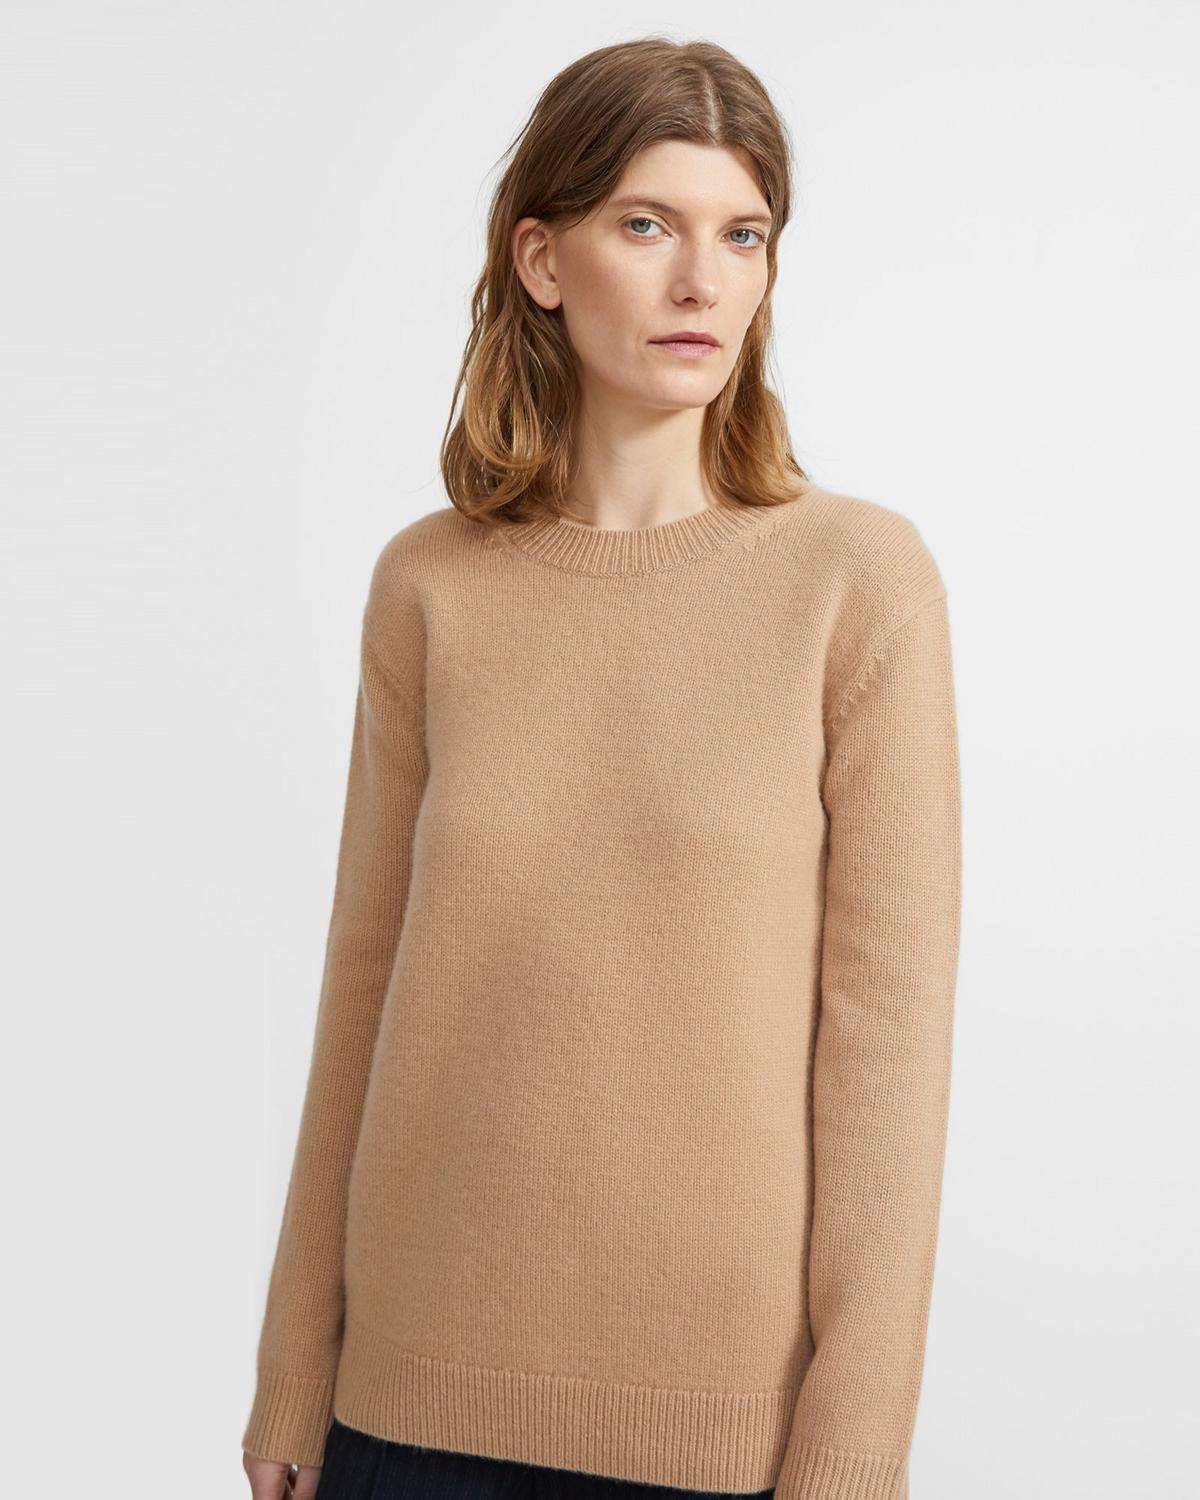 Relaxed Crewneck Sweater in Cashmere